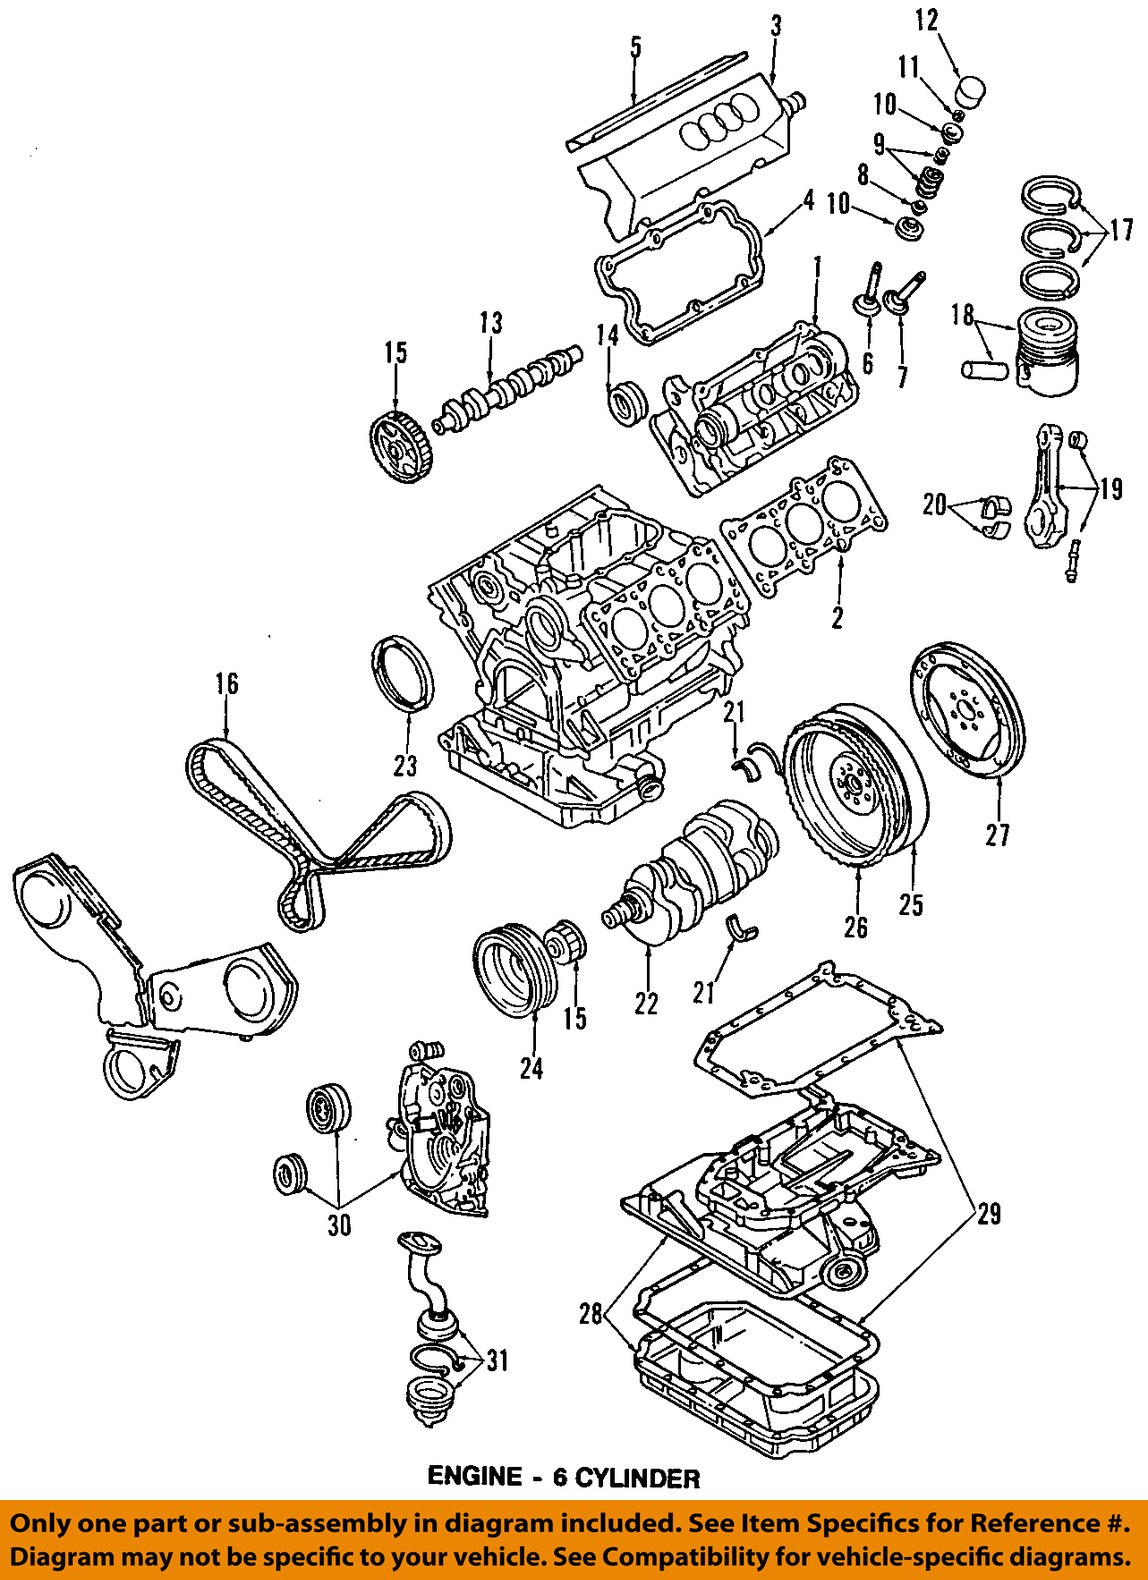 Diagram Of Audi A Engine Compartment Smart Wiring Diagrams 2007 Tundra Oediag2 E255047 Furthermore Pontiac G6 Fuse Box Instrument Panel Further As Well On